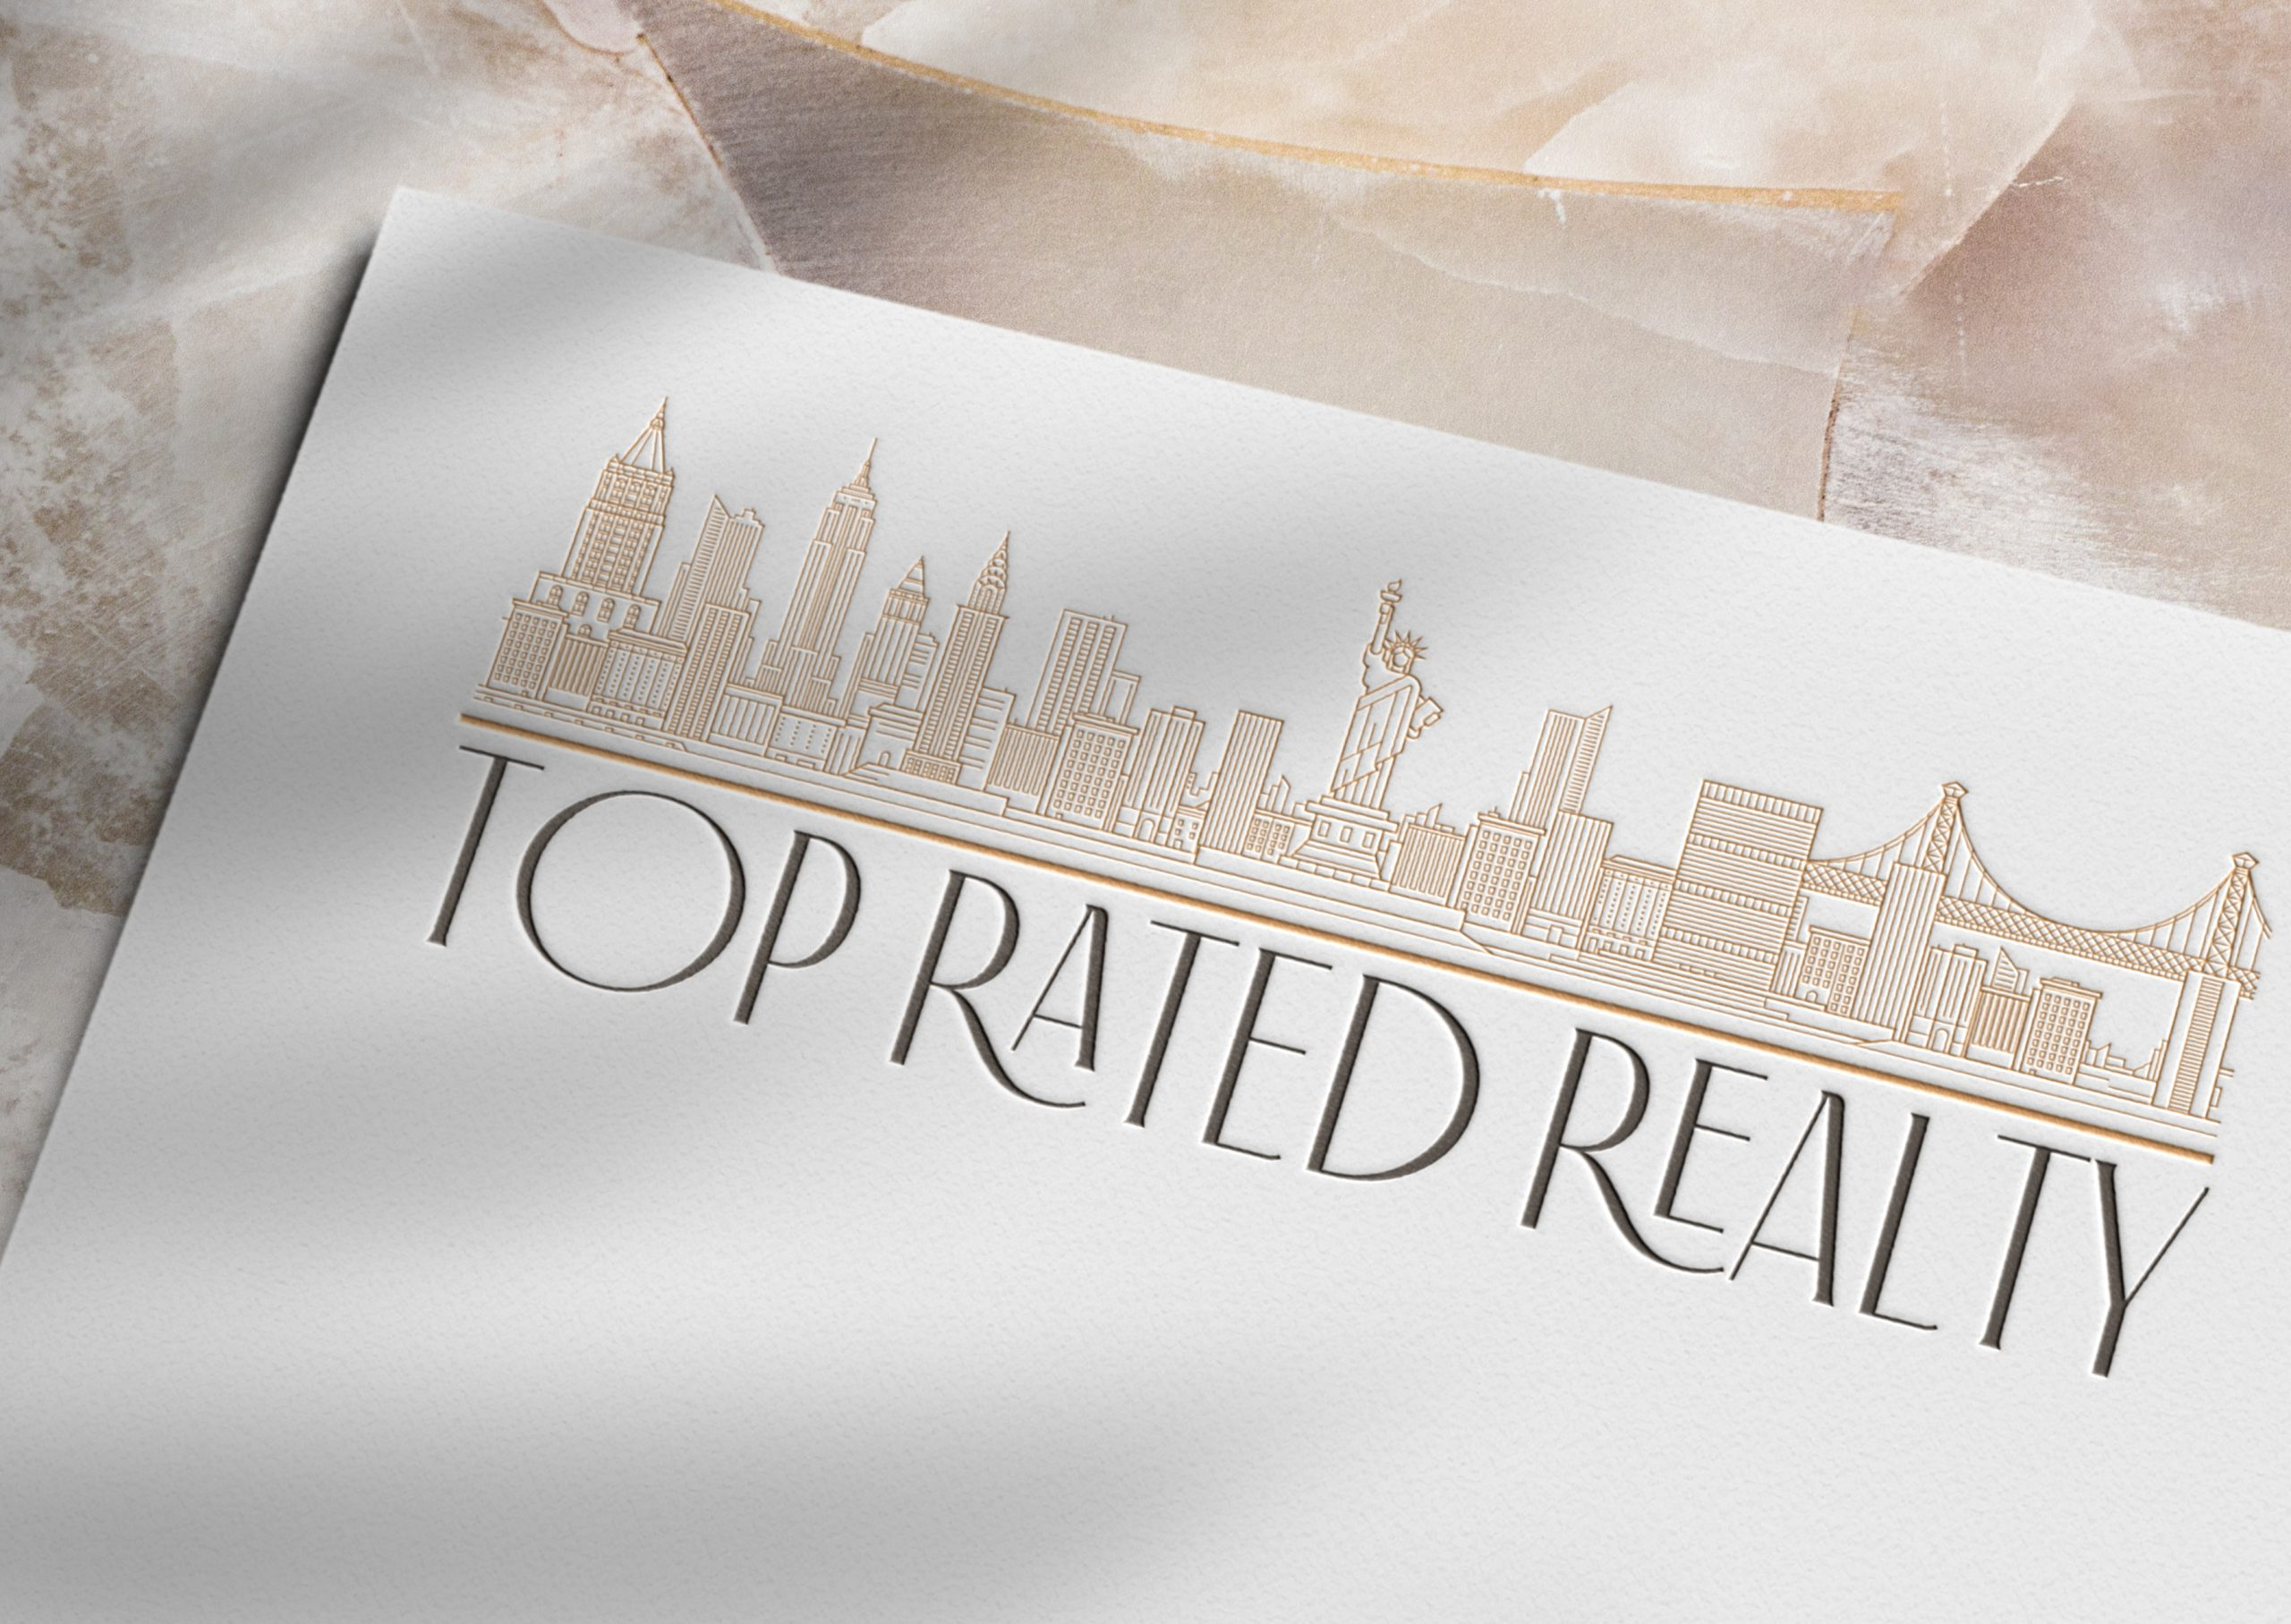 Timeless logo design for Top Rated Realty by Fancy Girl Design Studio